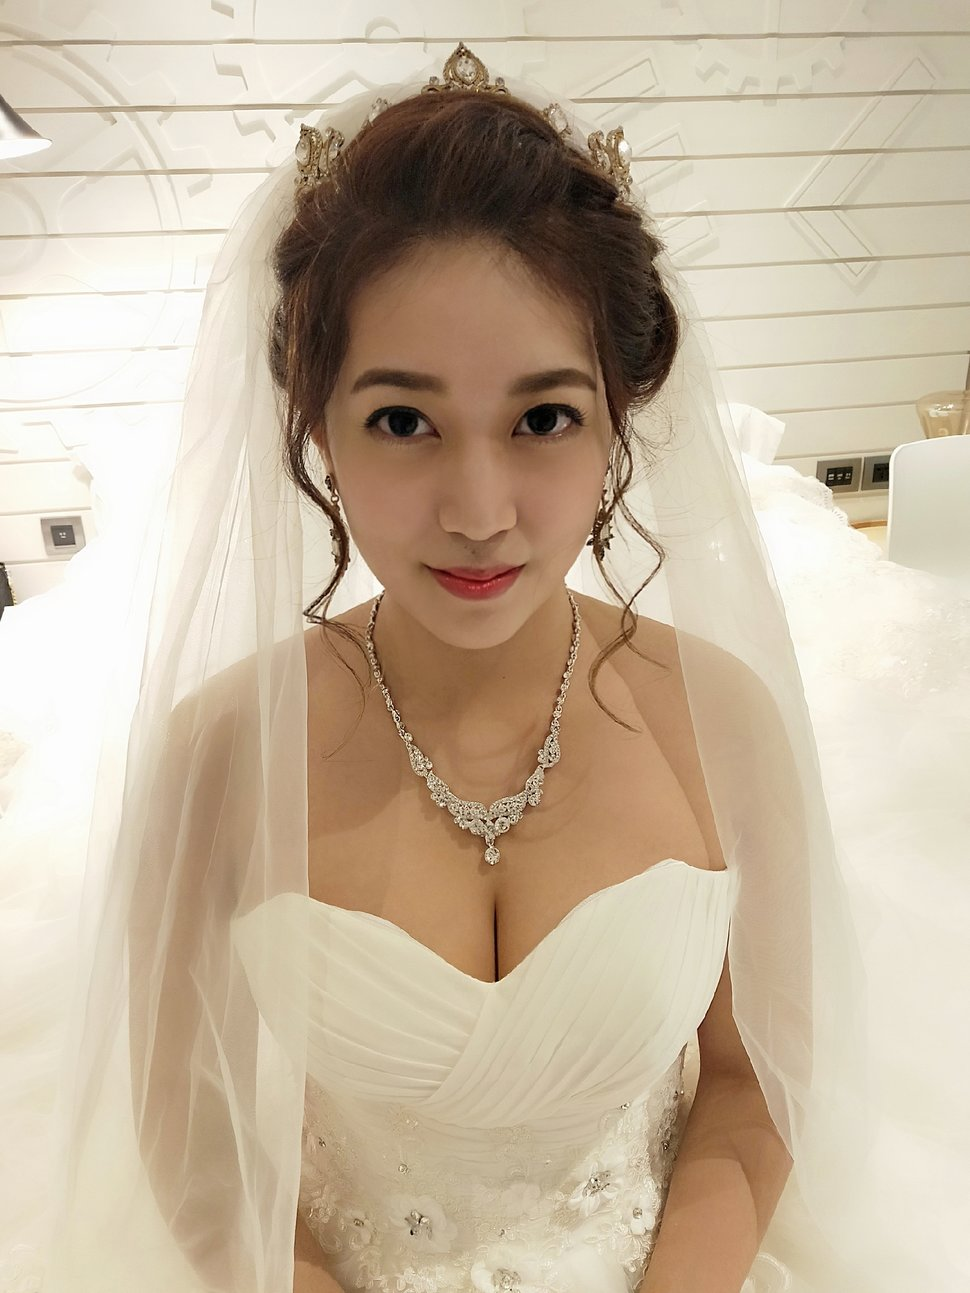 IMG20181201083922_mr1543632092091 - Elaine makeup《結婚吧》